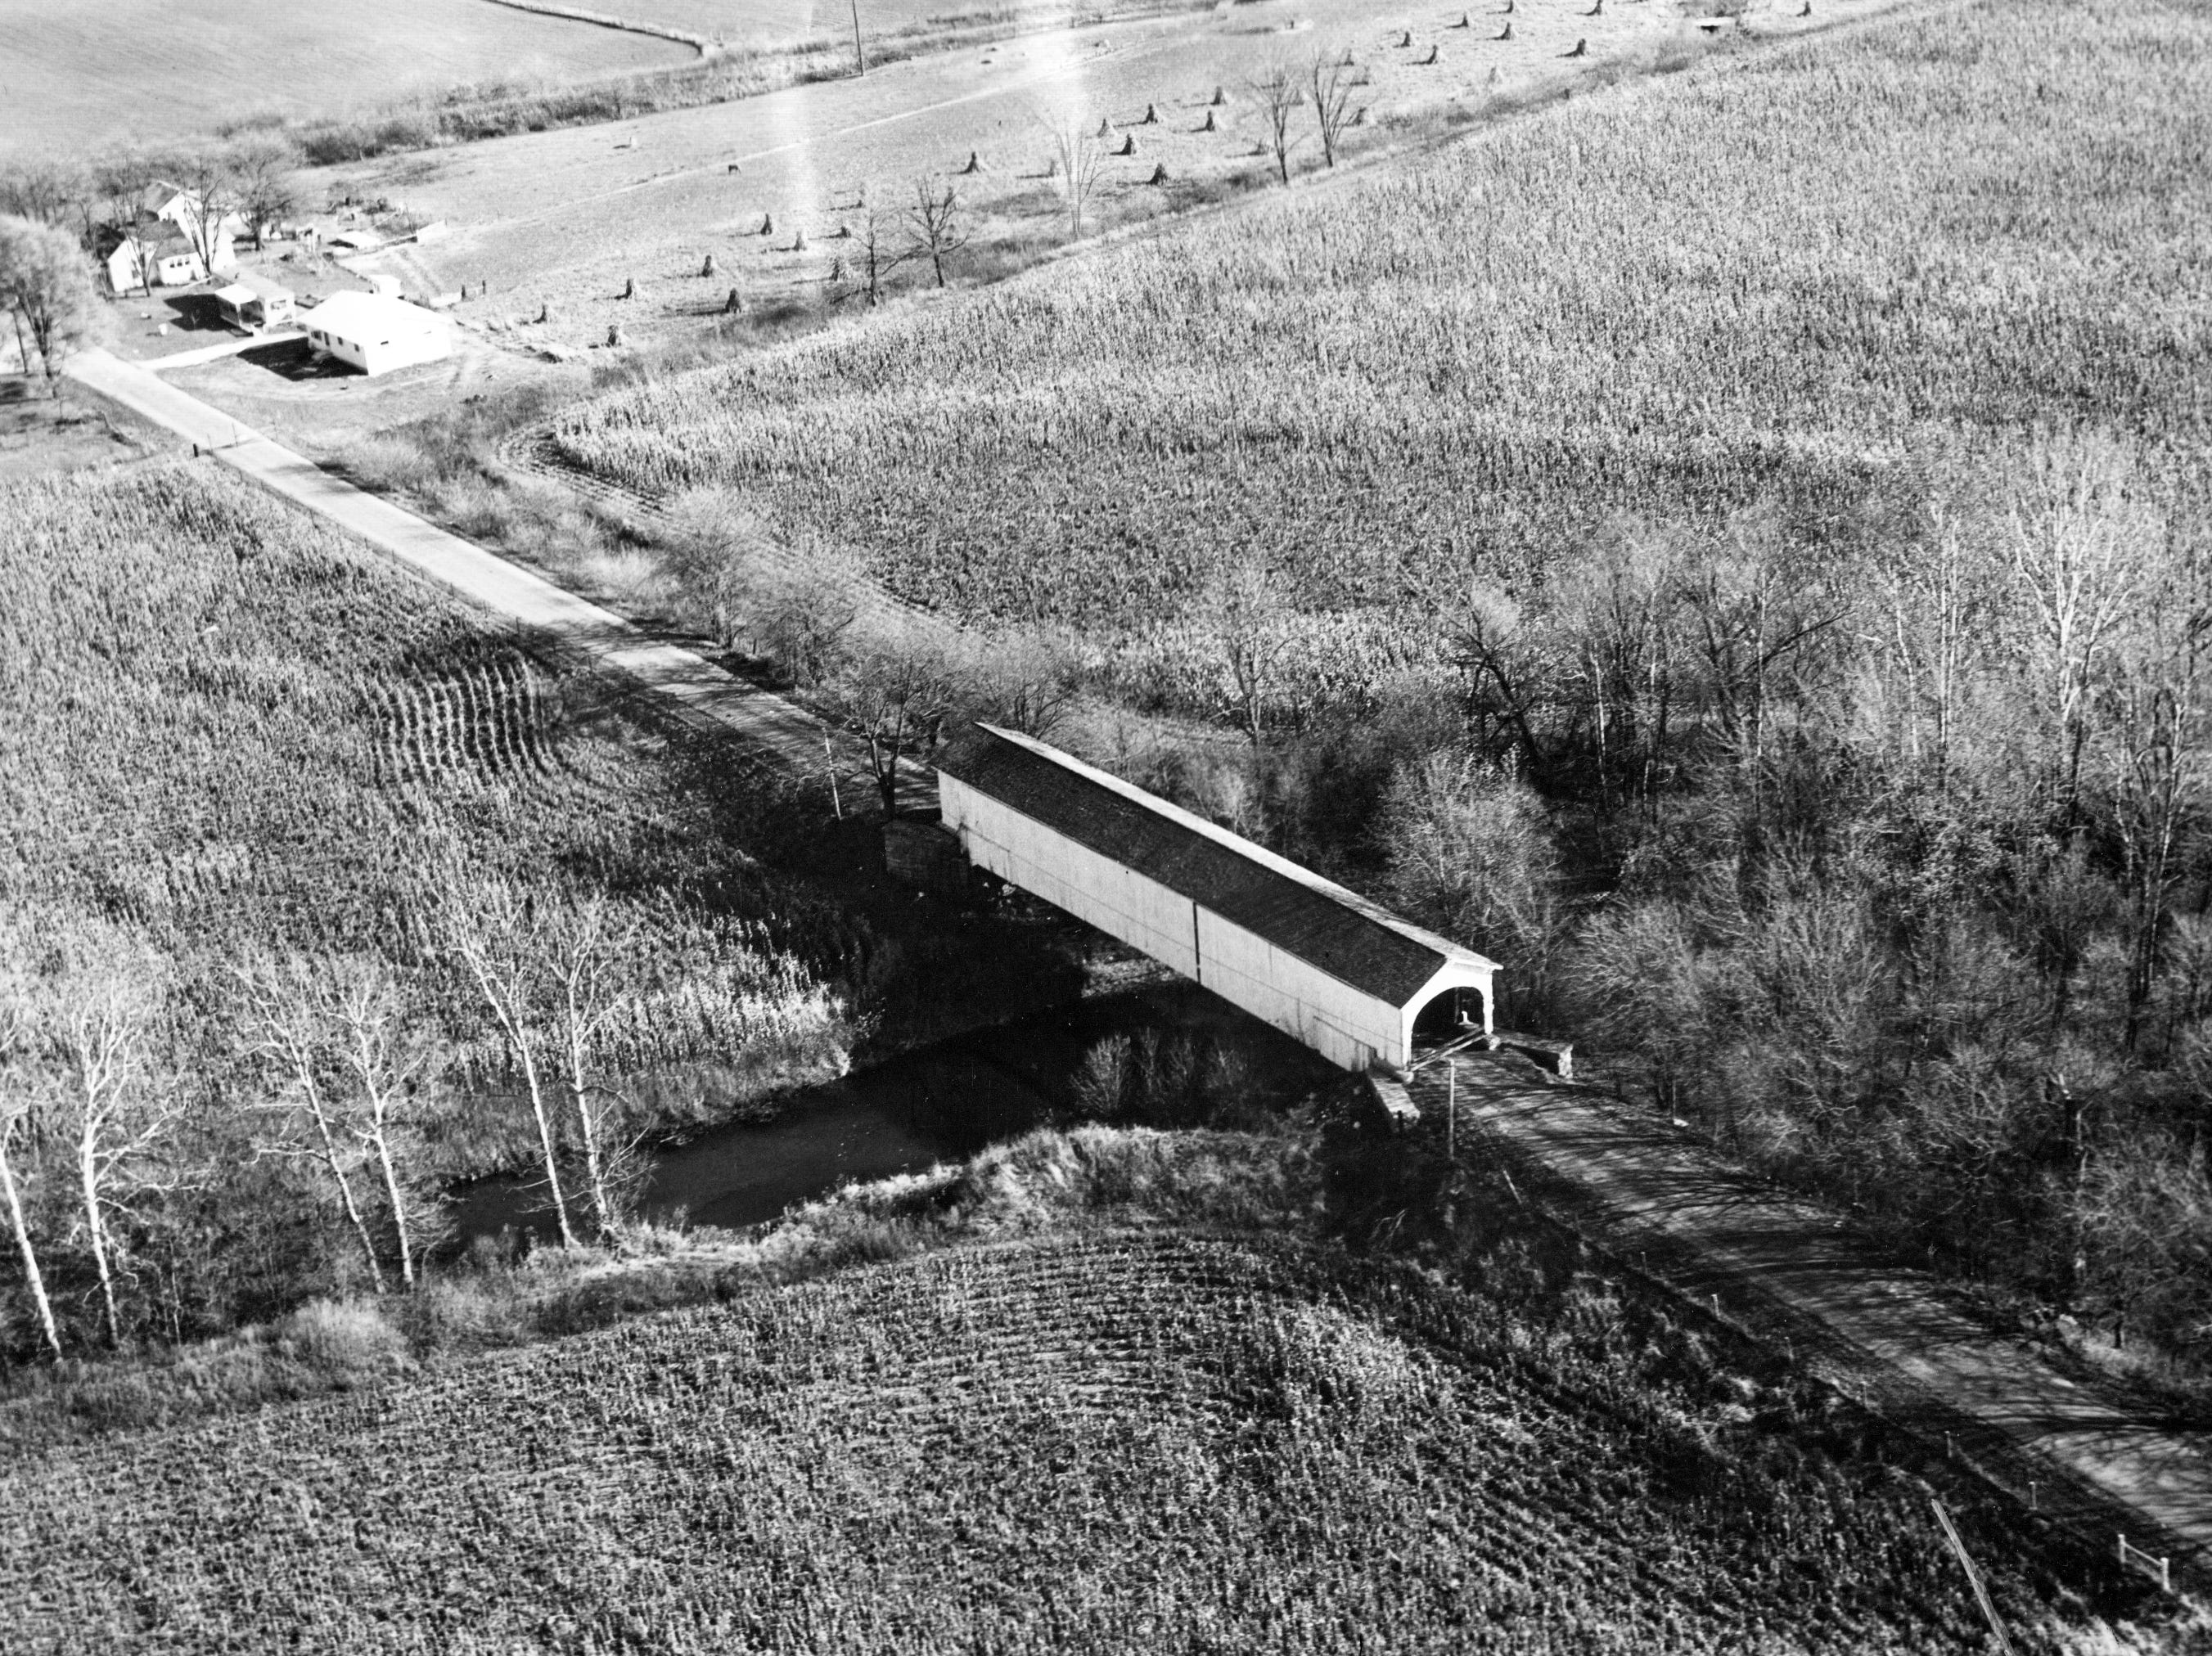 Shelby County covered bridge spanning Lewis Creek shown in 1967.